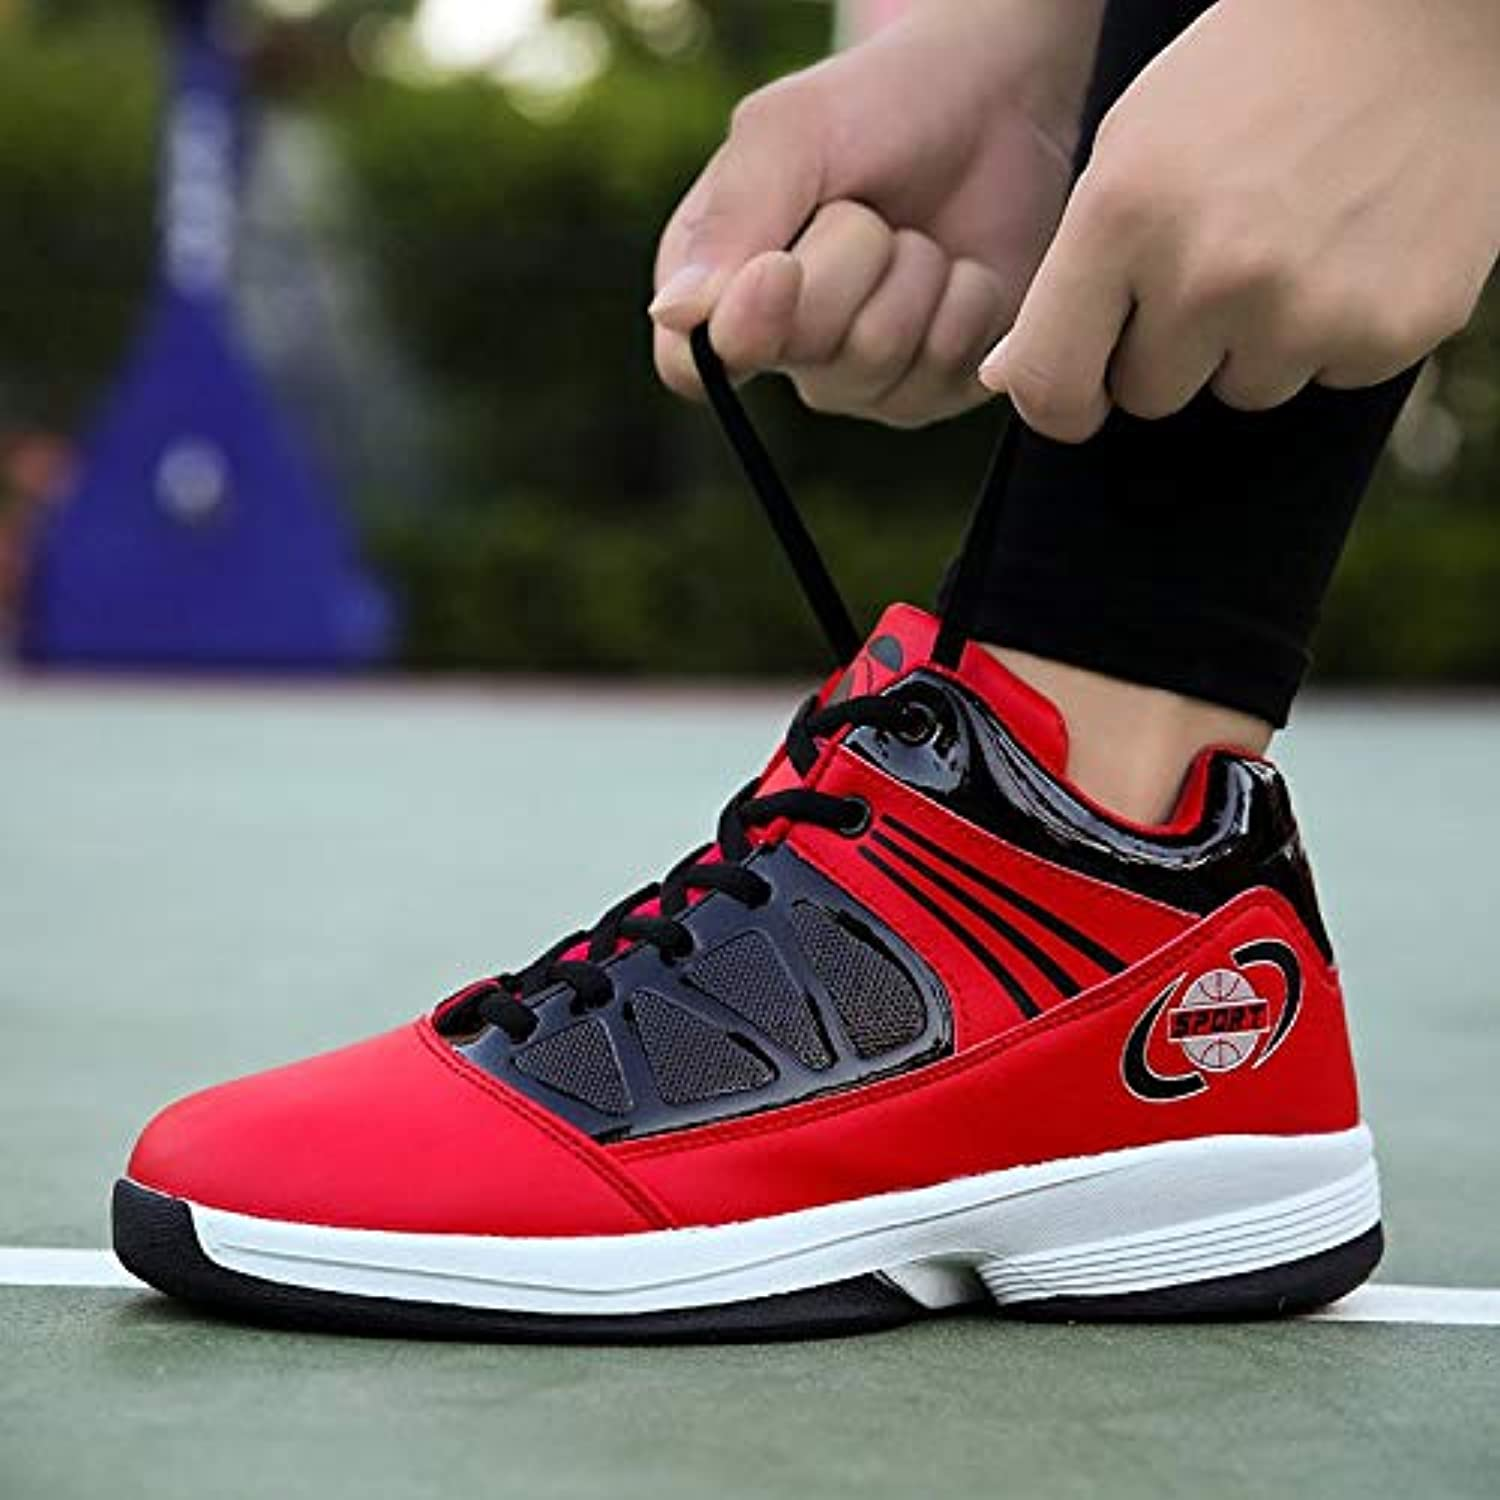 Liuxc sports shoes Sports basketball shoes wear-resistant shock-absorbing basketball shoes wild men's shoes